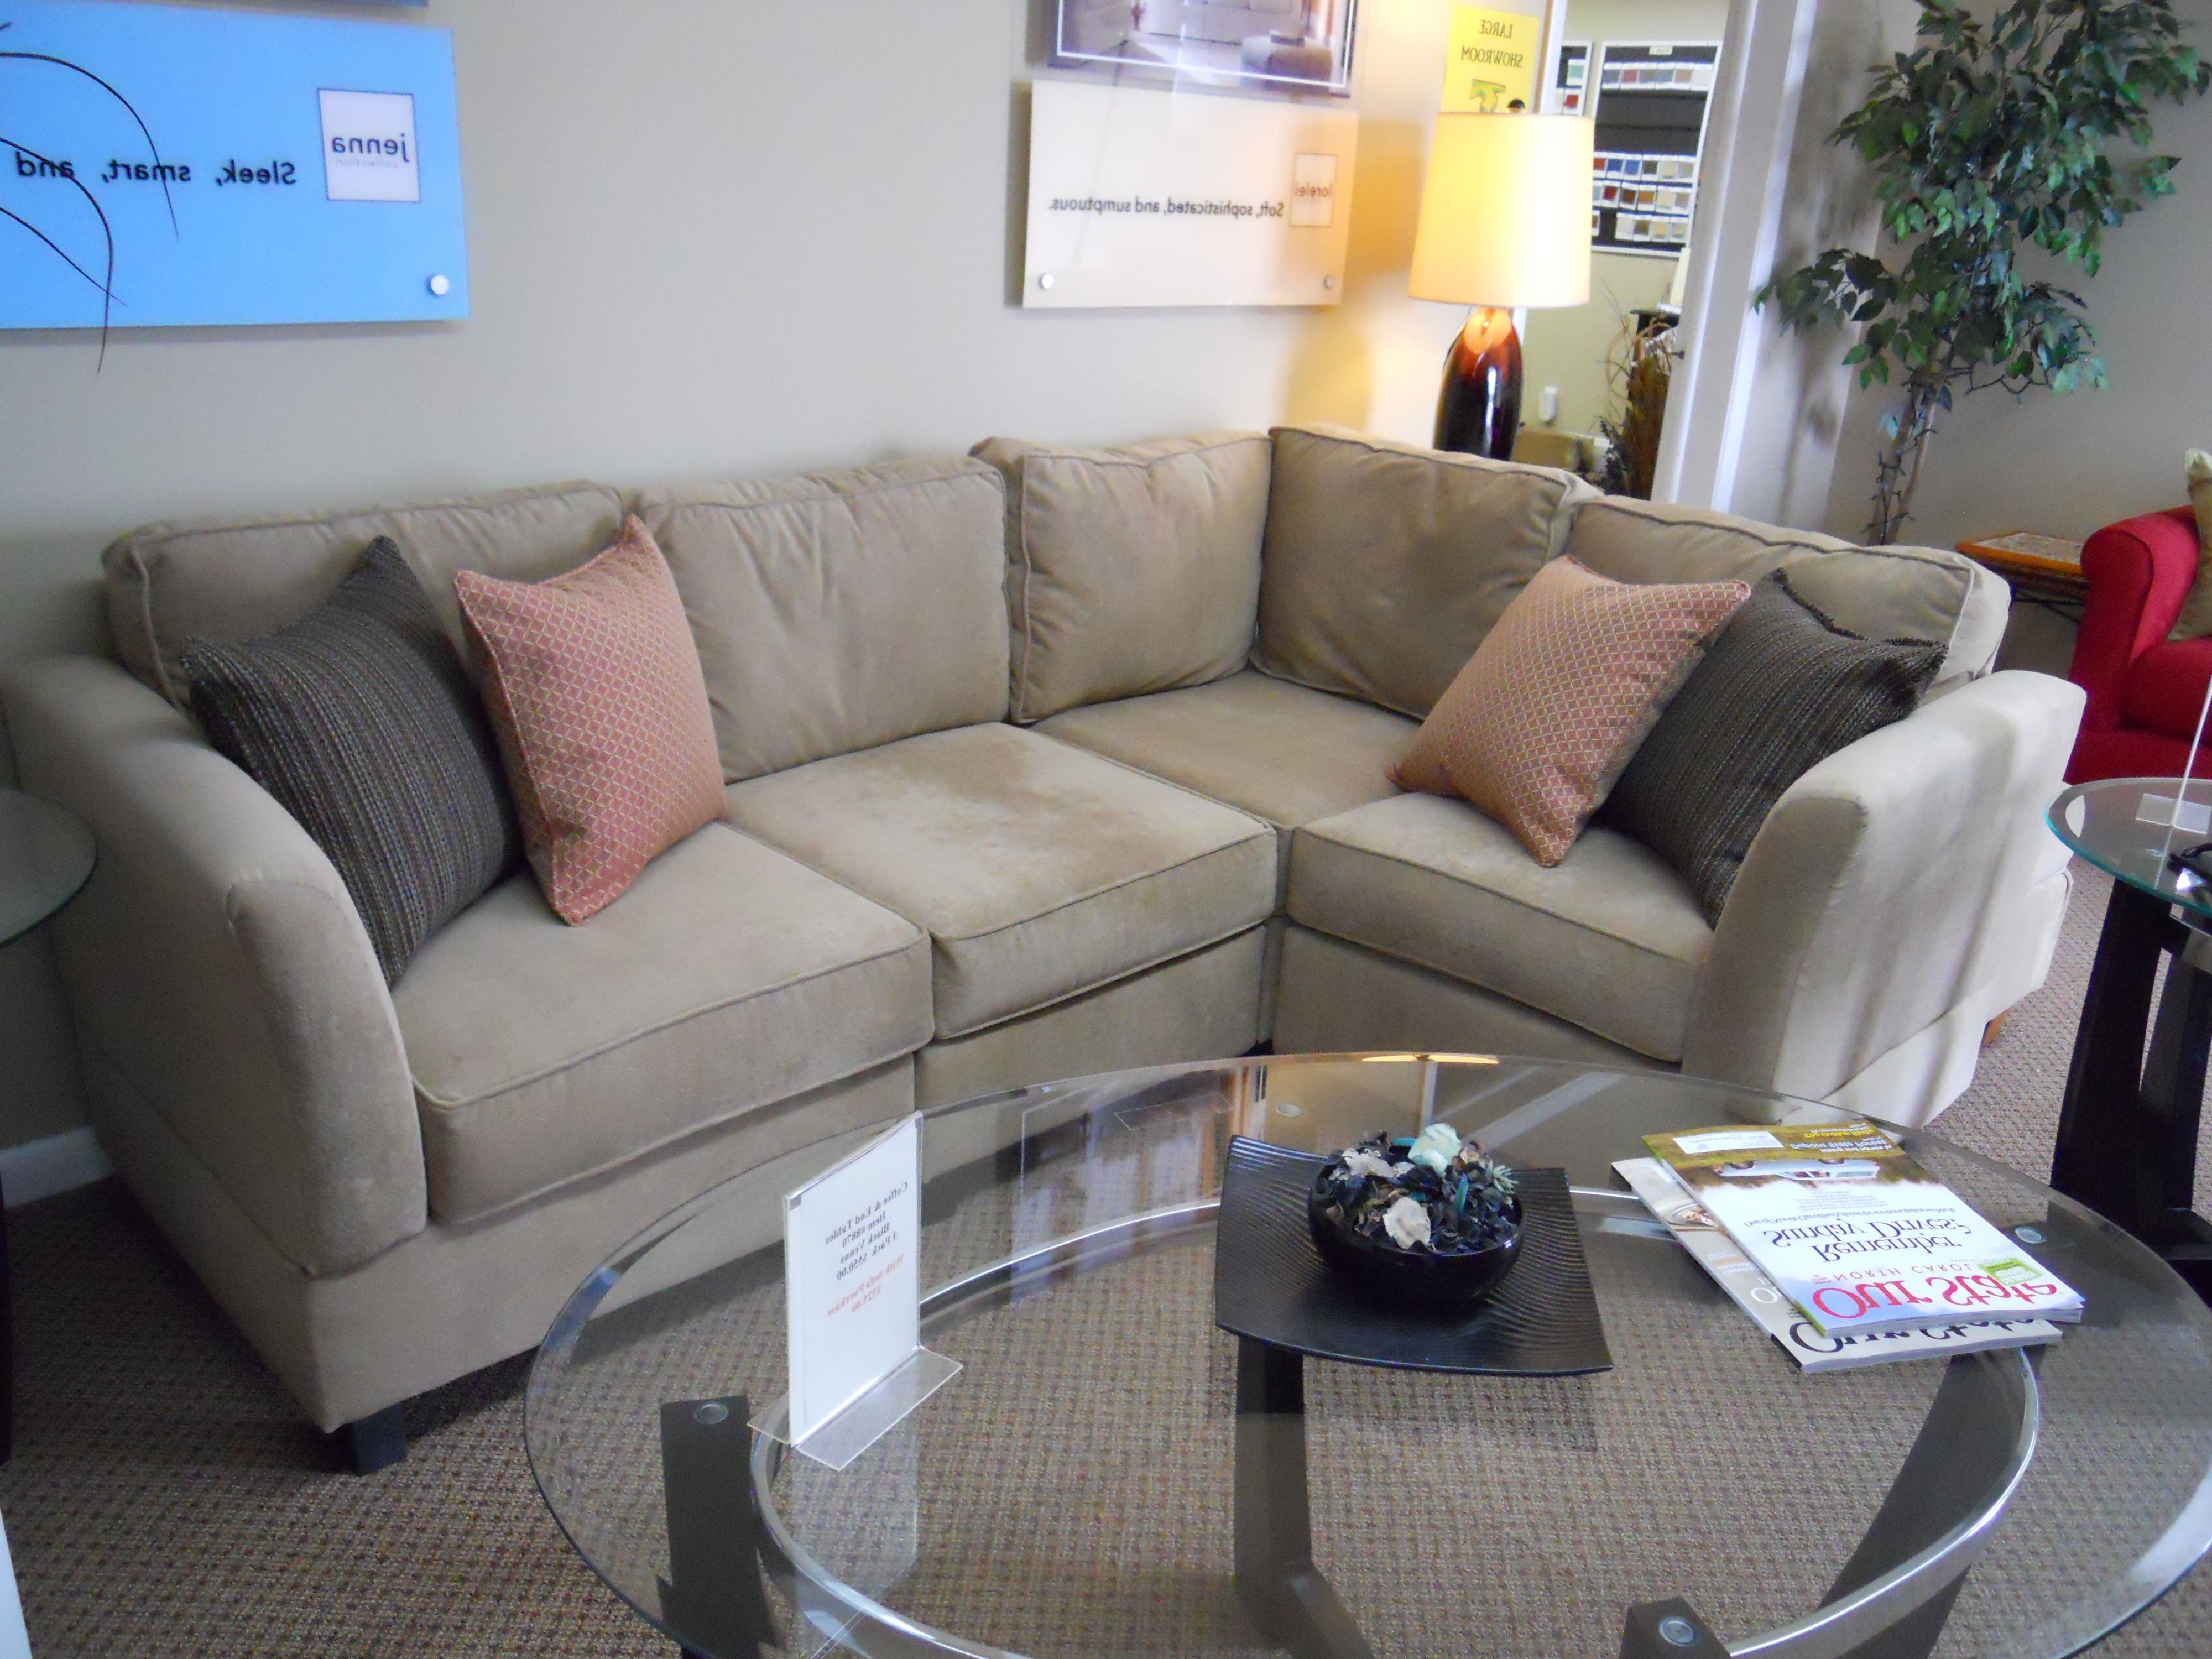 Fashionable Sectional Sofas In Canada Pertaining To Perfect Apartment Sectional Sofa 51 Contemporary Sofa Inspiration (View 12 of 20)